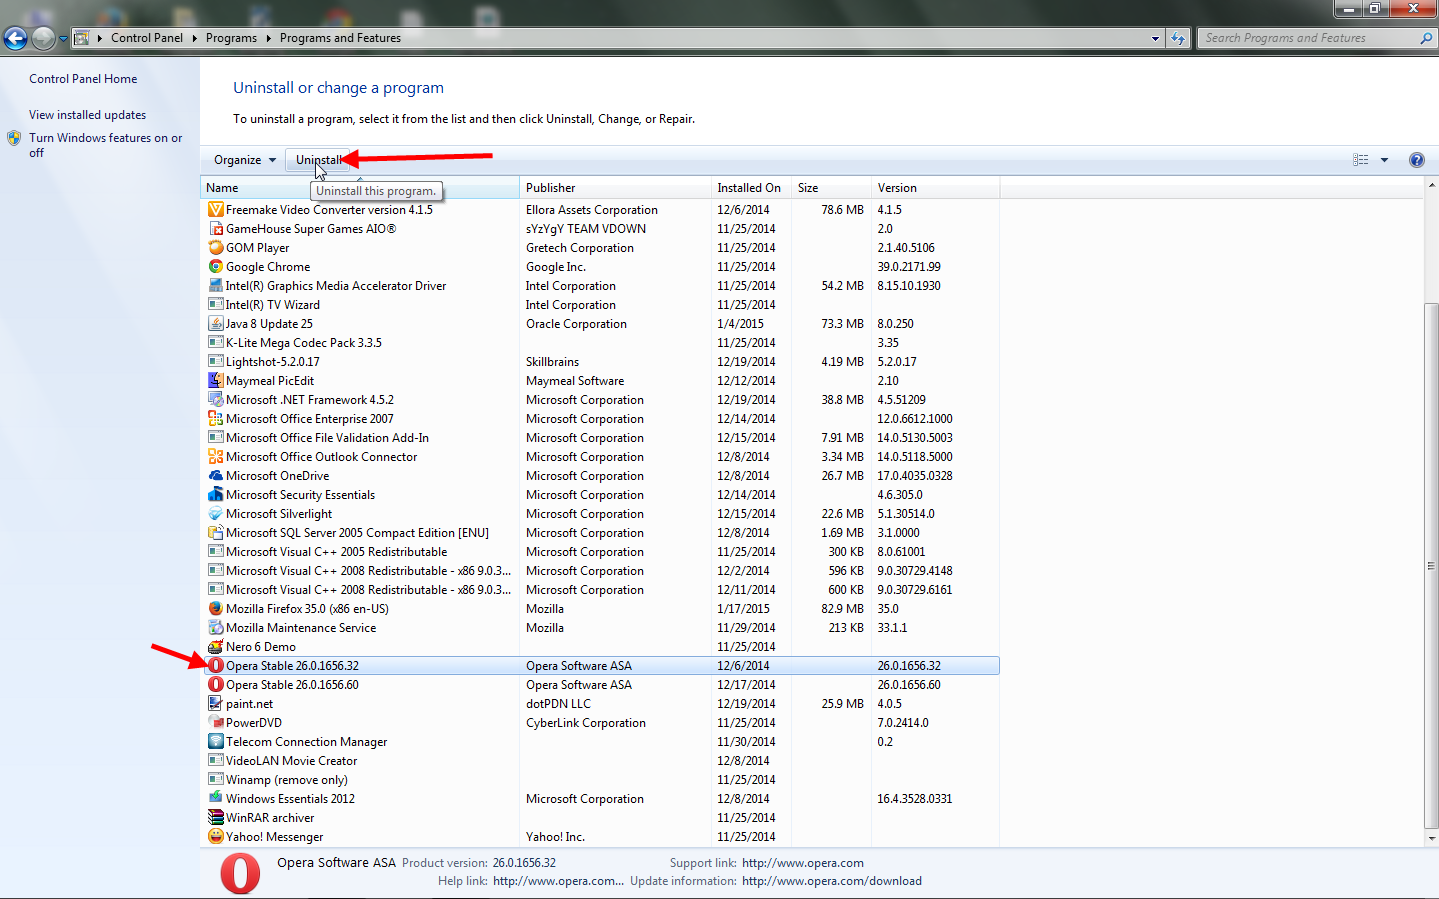 cara menghapus program di windows 7